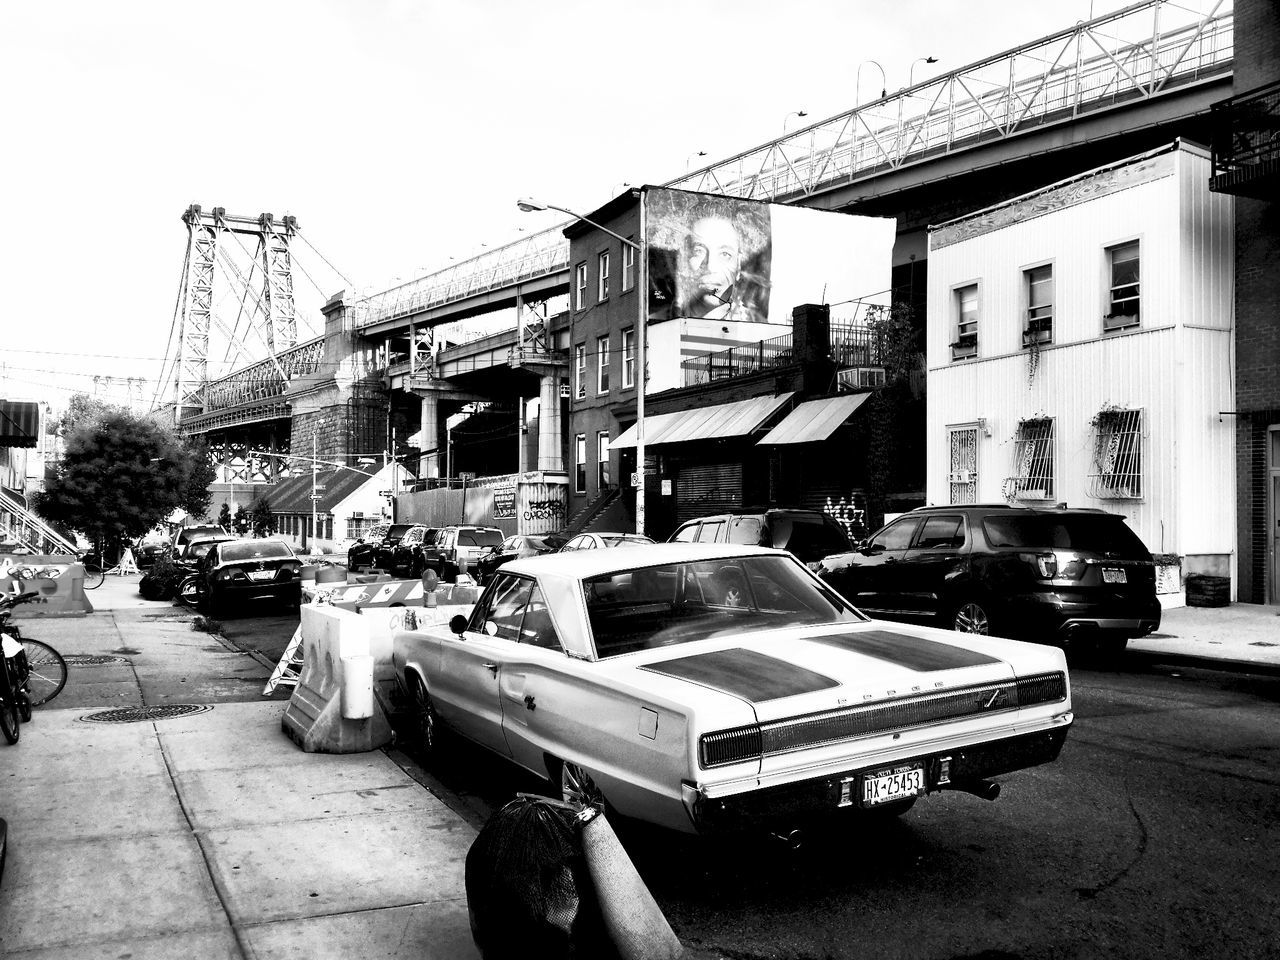 Streetscape Dodge Muscle Cars Brooklyn Williamsburg Walking Around NYC Newyorkcity Cars Streetphotography B&w Street Photography EyeEm Best Shots EyeEm Best Edits Monochrome Everydayusa Black & White Blackandwhite My Best Photo 2015 EyeEmBestPics Travel Photography Light And Shadow Embrace Urban Life Black And White Blackandwhite Photography Exploring New Ground Adapted To The City Welcome To Black